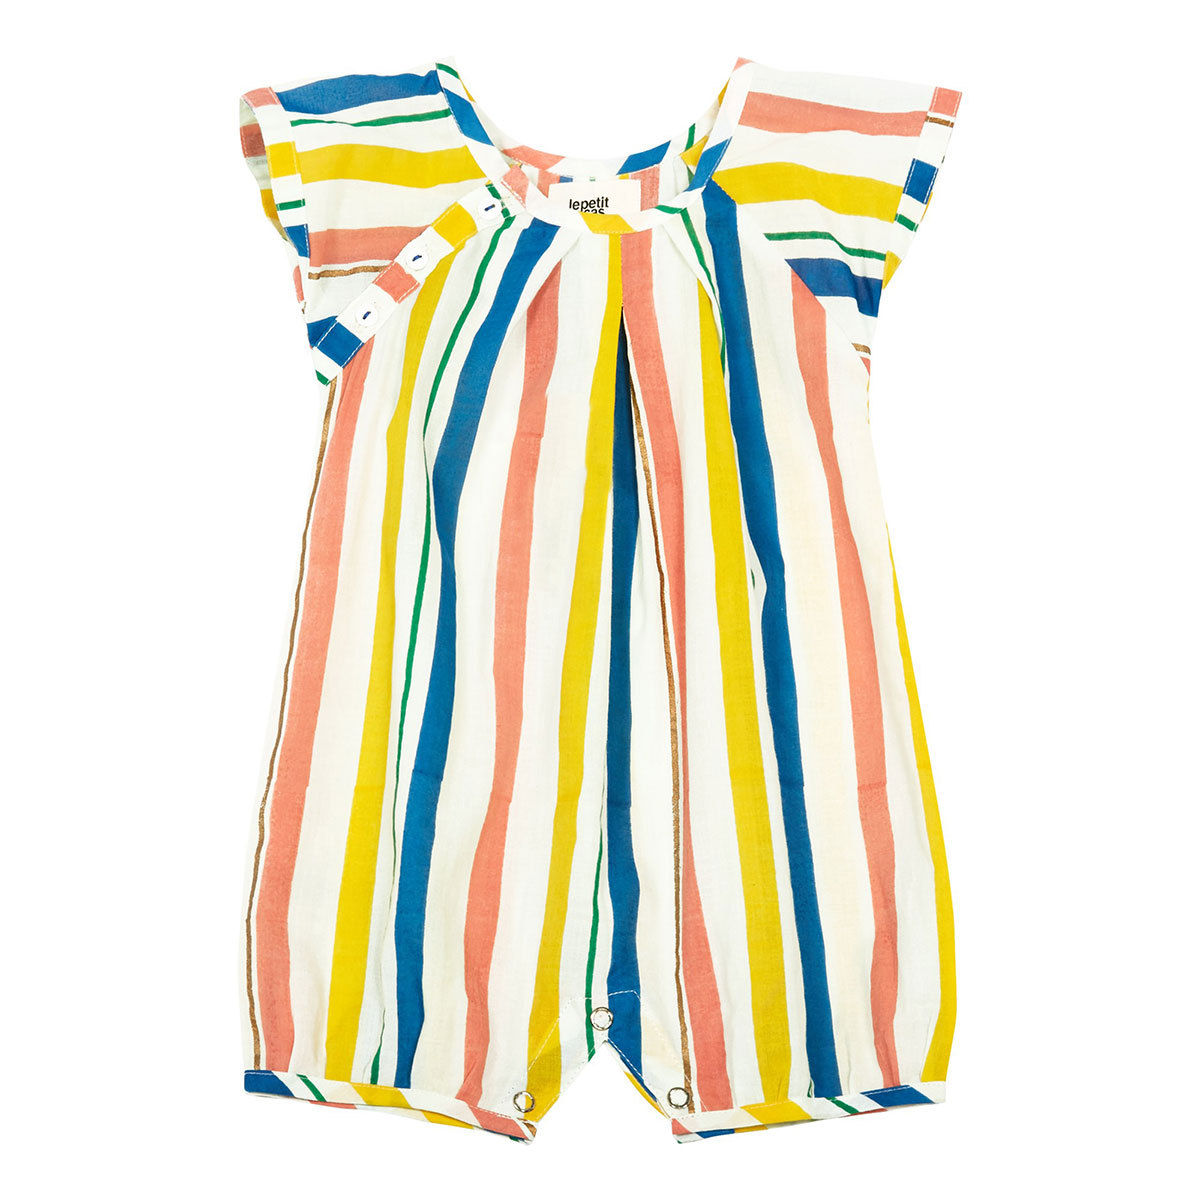 Robe & Combinaison Barboteuse Leopold - Multico Stripes - 6/9 Mois Barboteuse Leopold - Multico Stripes - 6/9 Mois